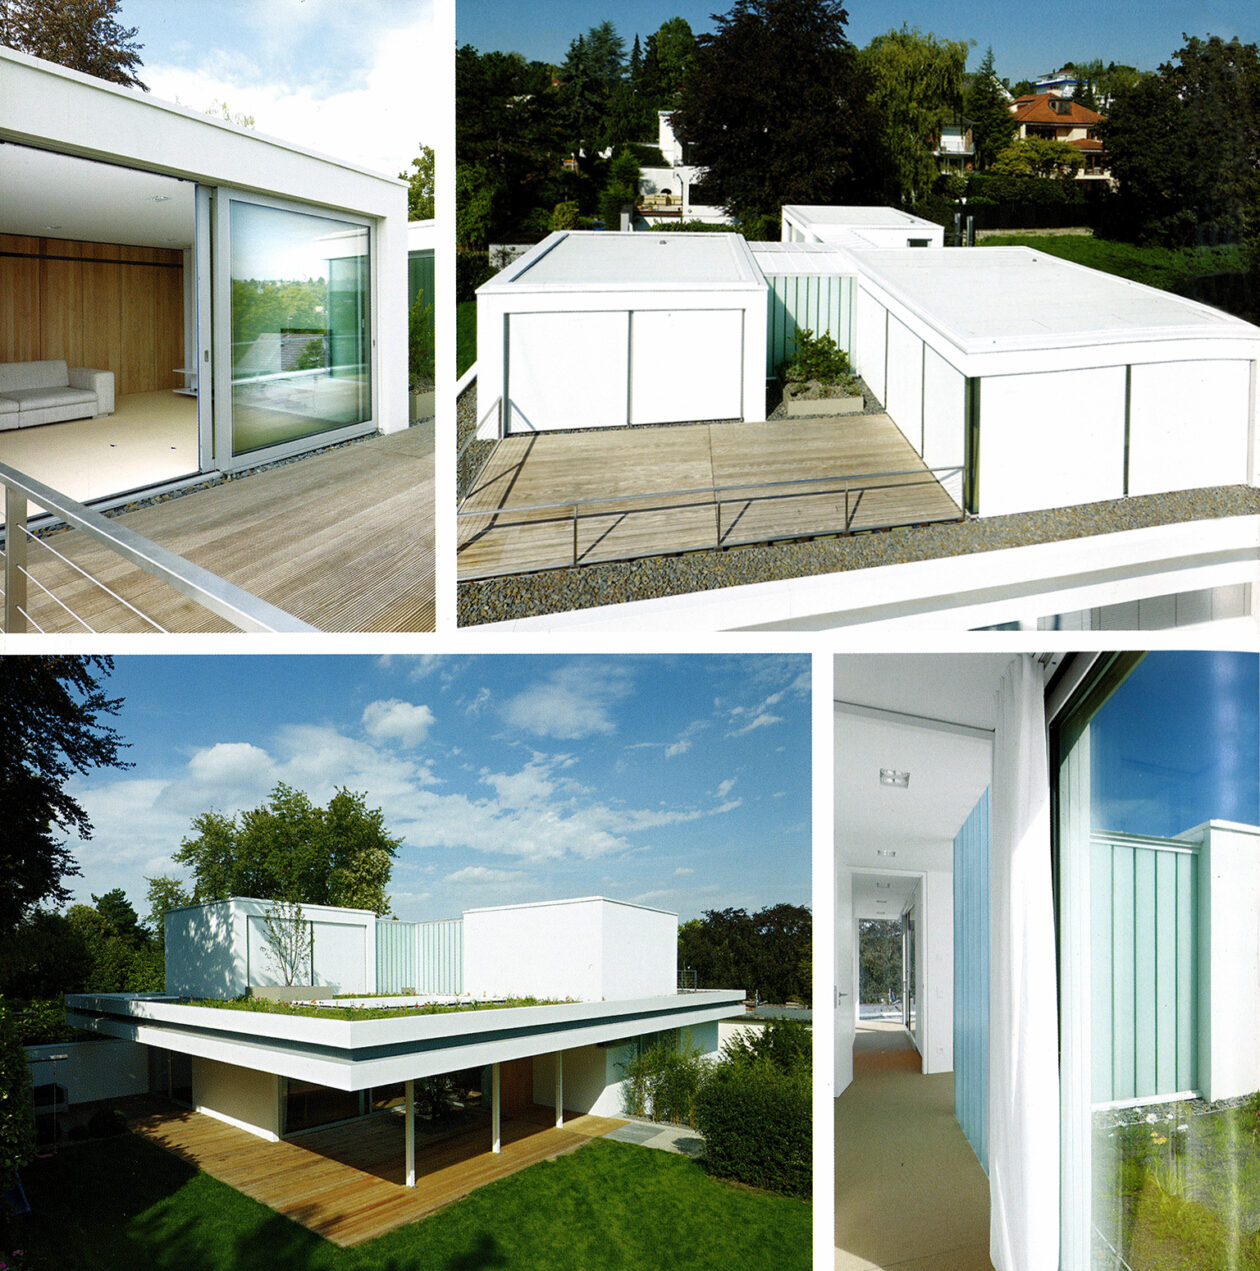 Courtyard Architecture And Design 04